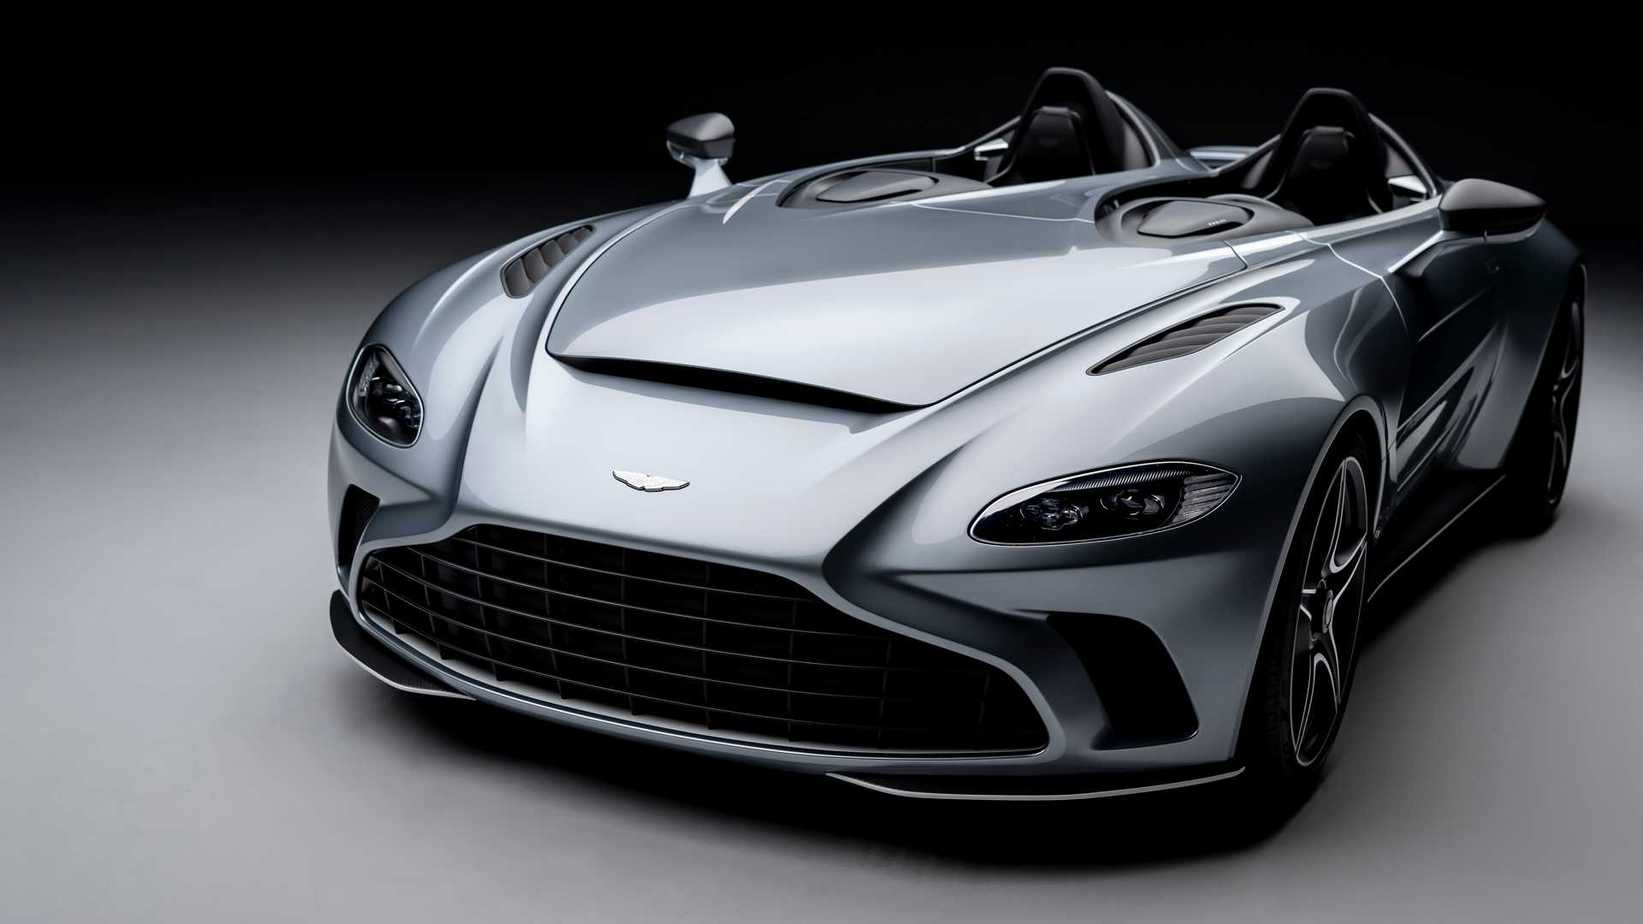 Photo of Aston Martin V12 Speedster